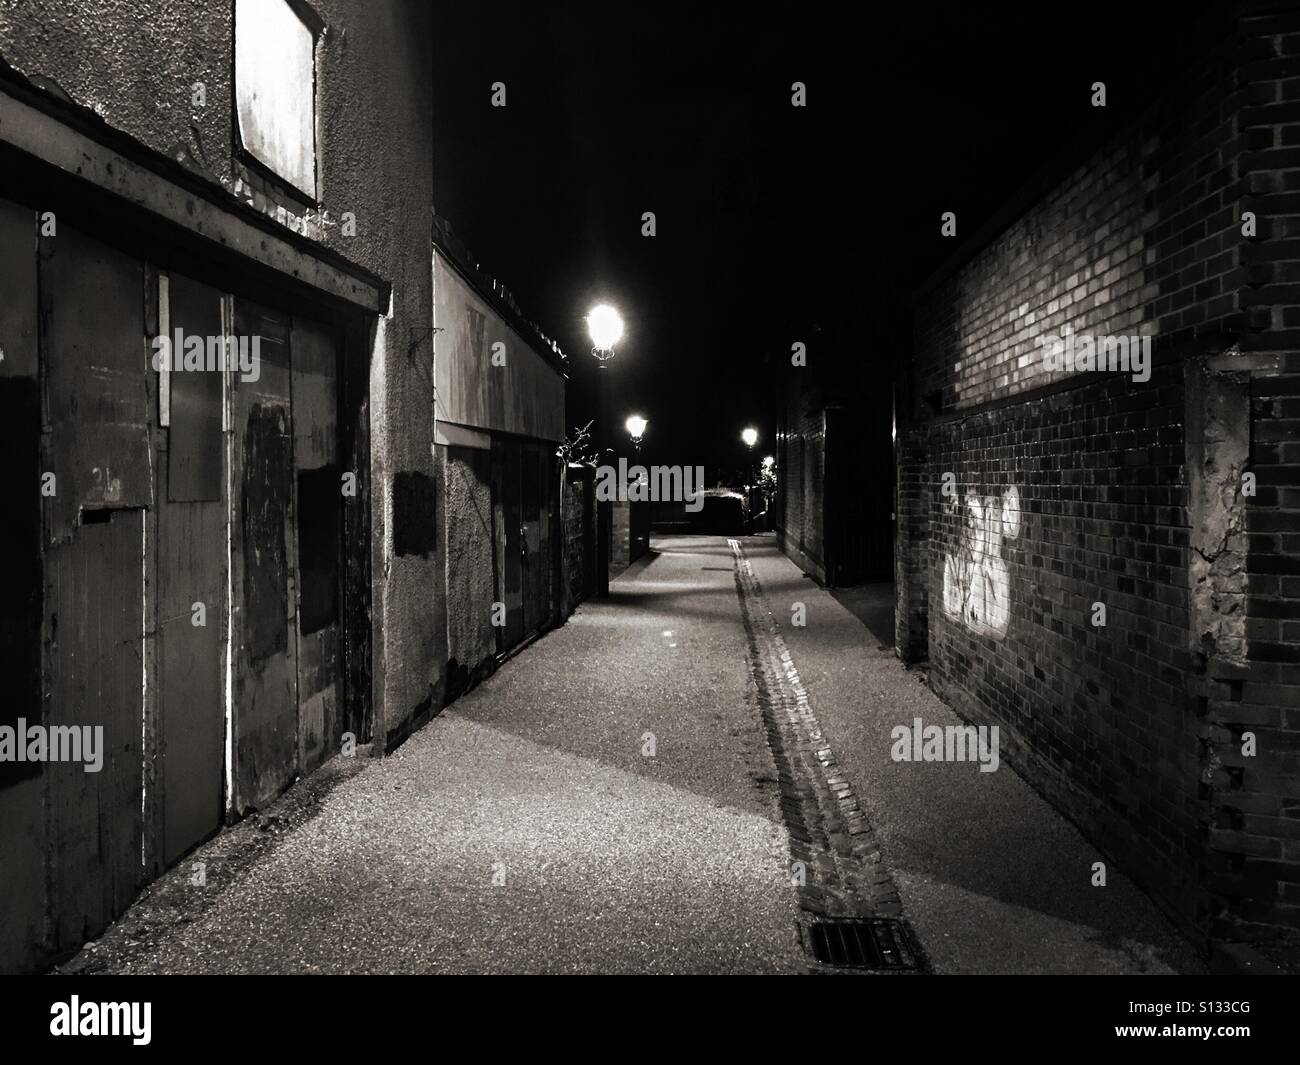 Rundown, dark, seedy and secluded back alley. - Stock Image